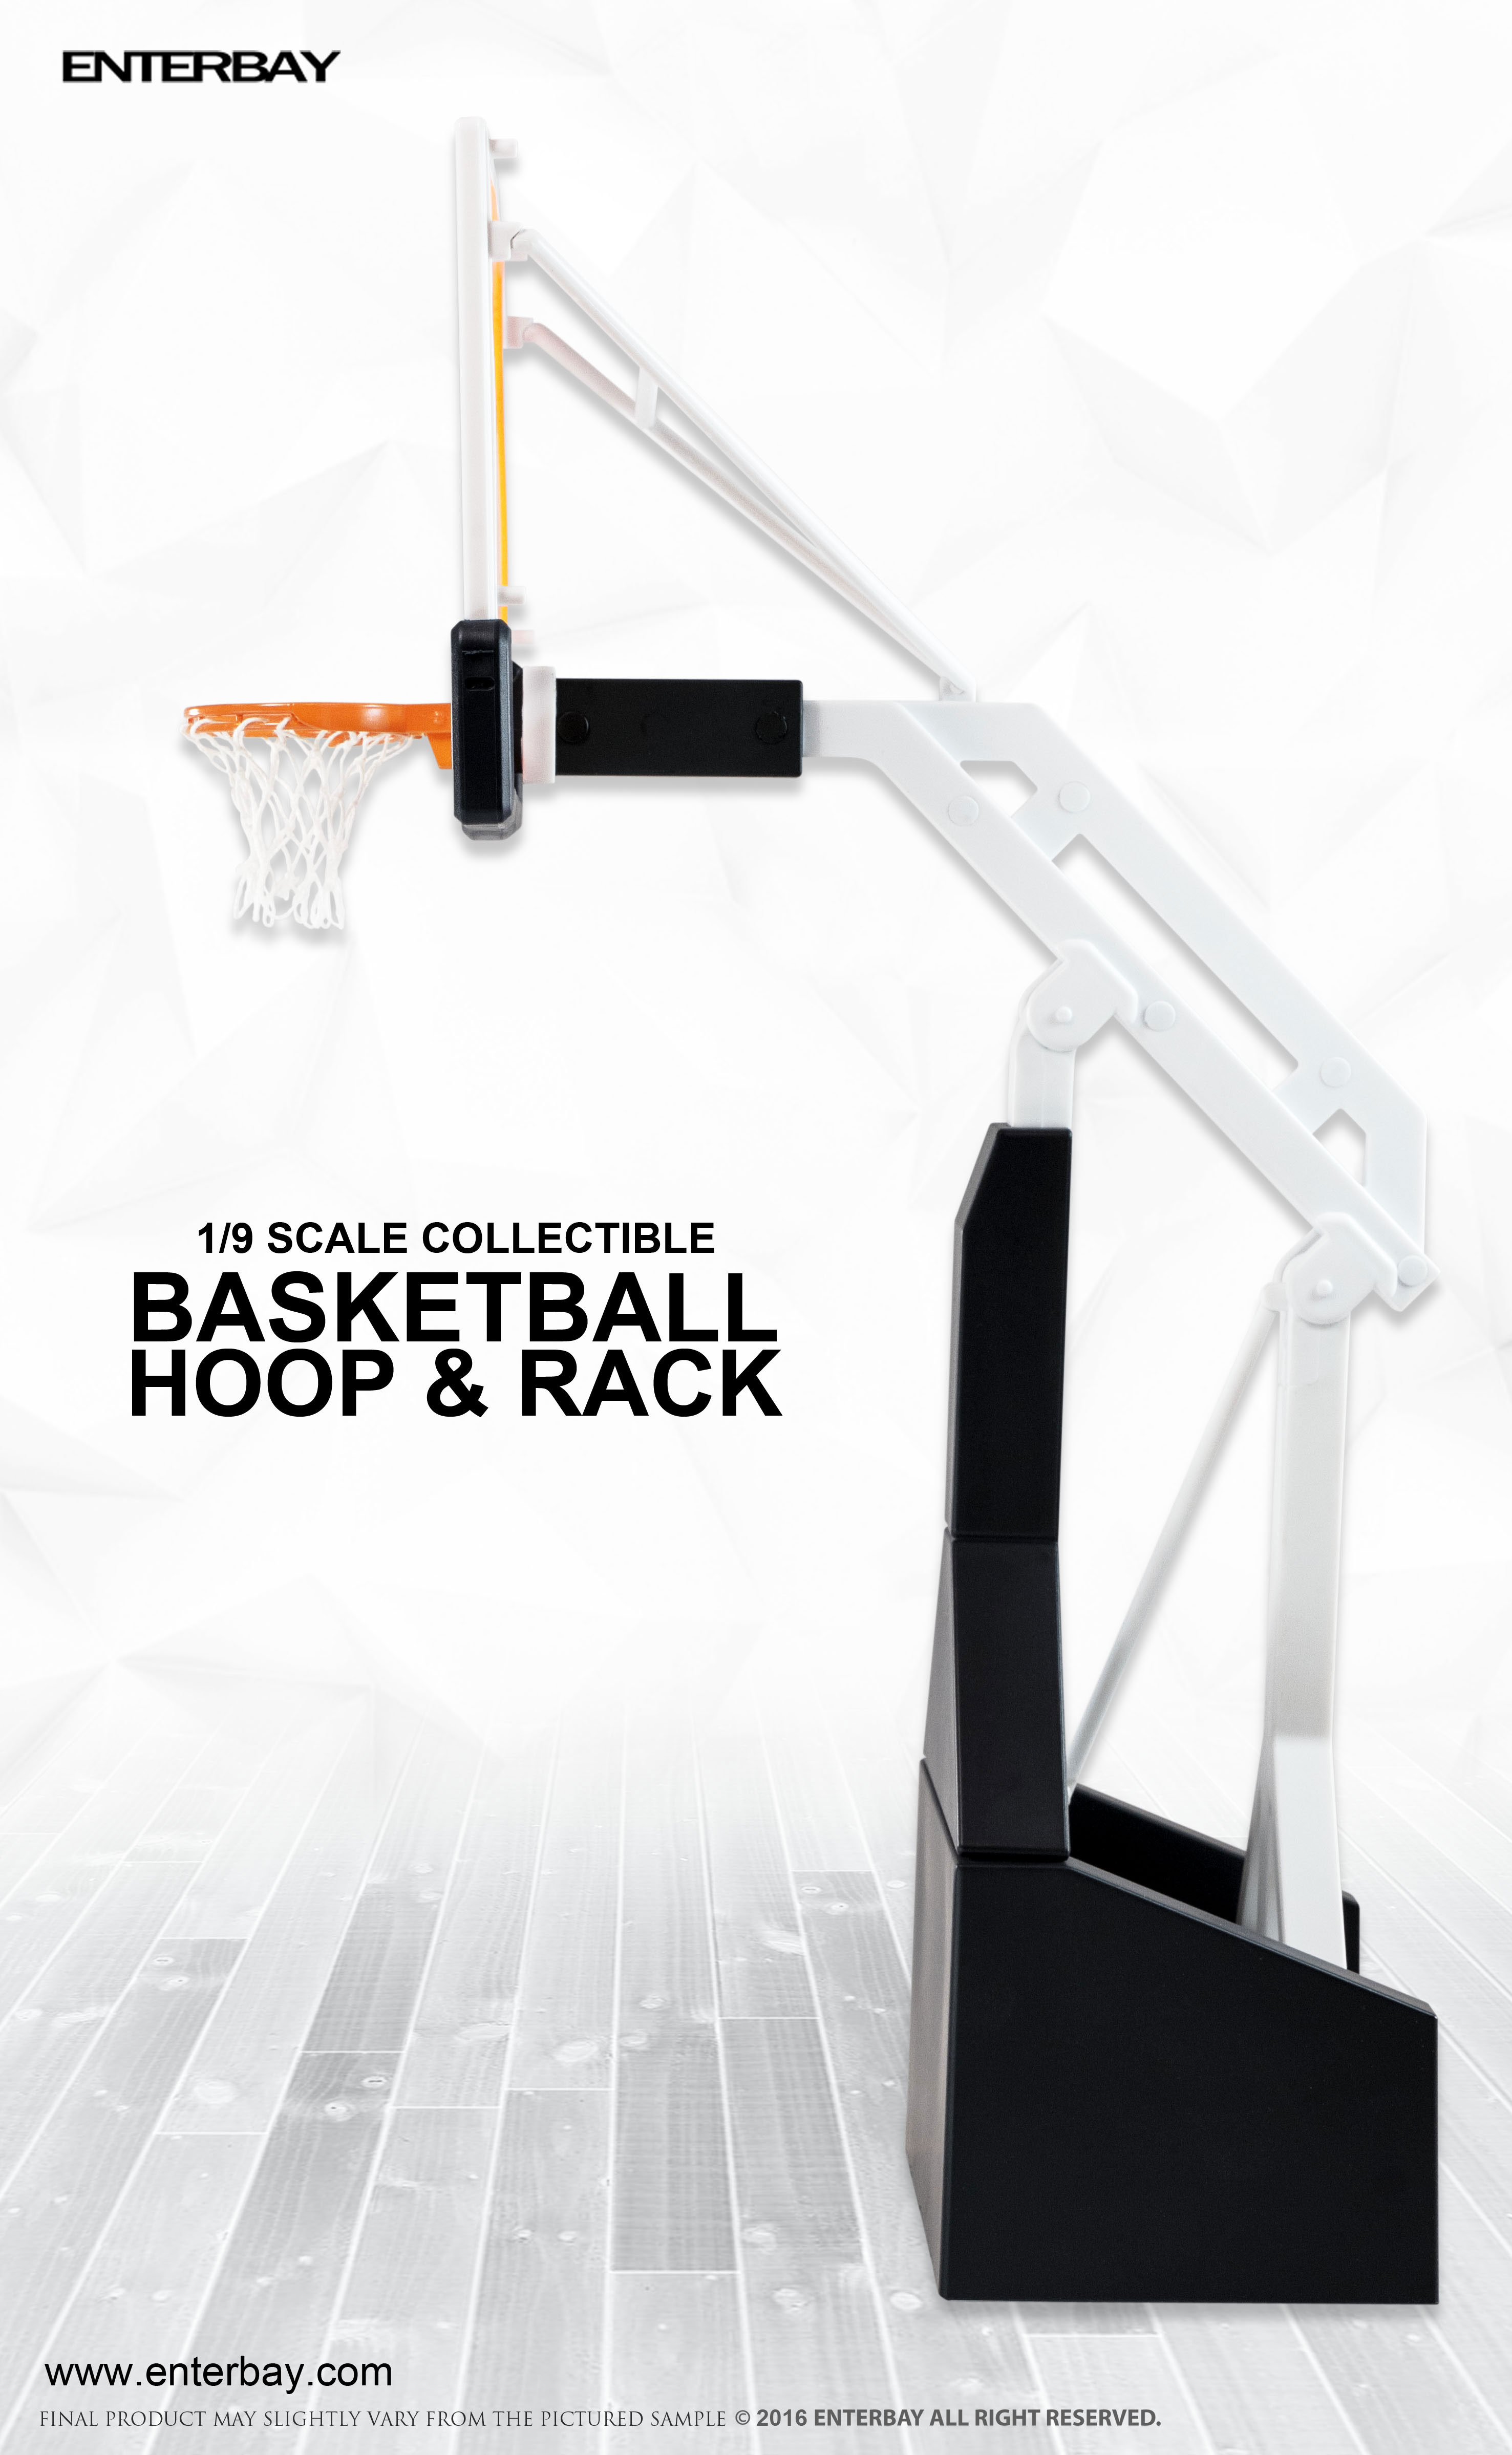 grill comey l of size tag industrial sports storage smartroad bins shelving racks by full william bar sided basketball edsal mini rack mary single metal unit and with james